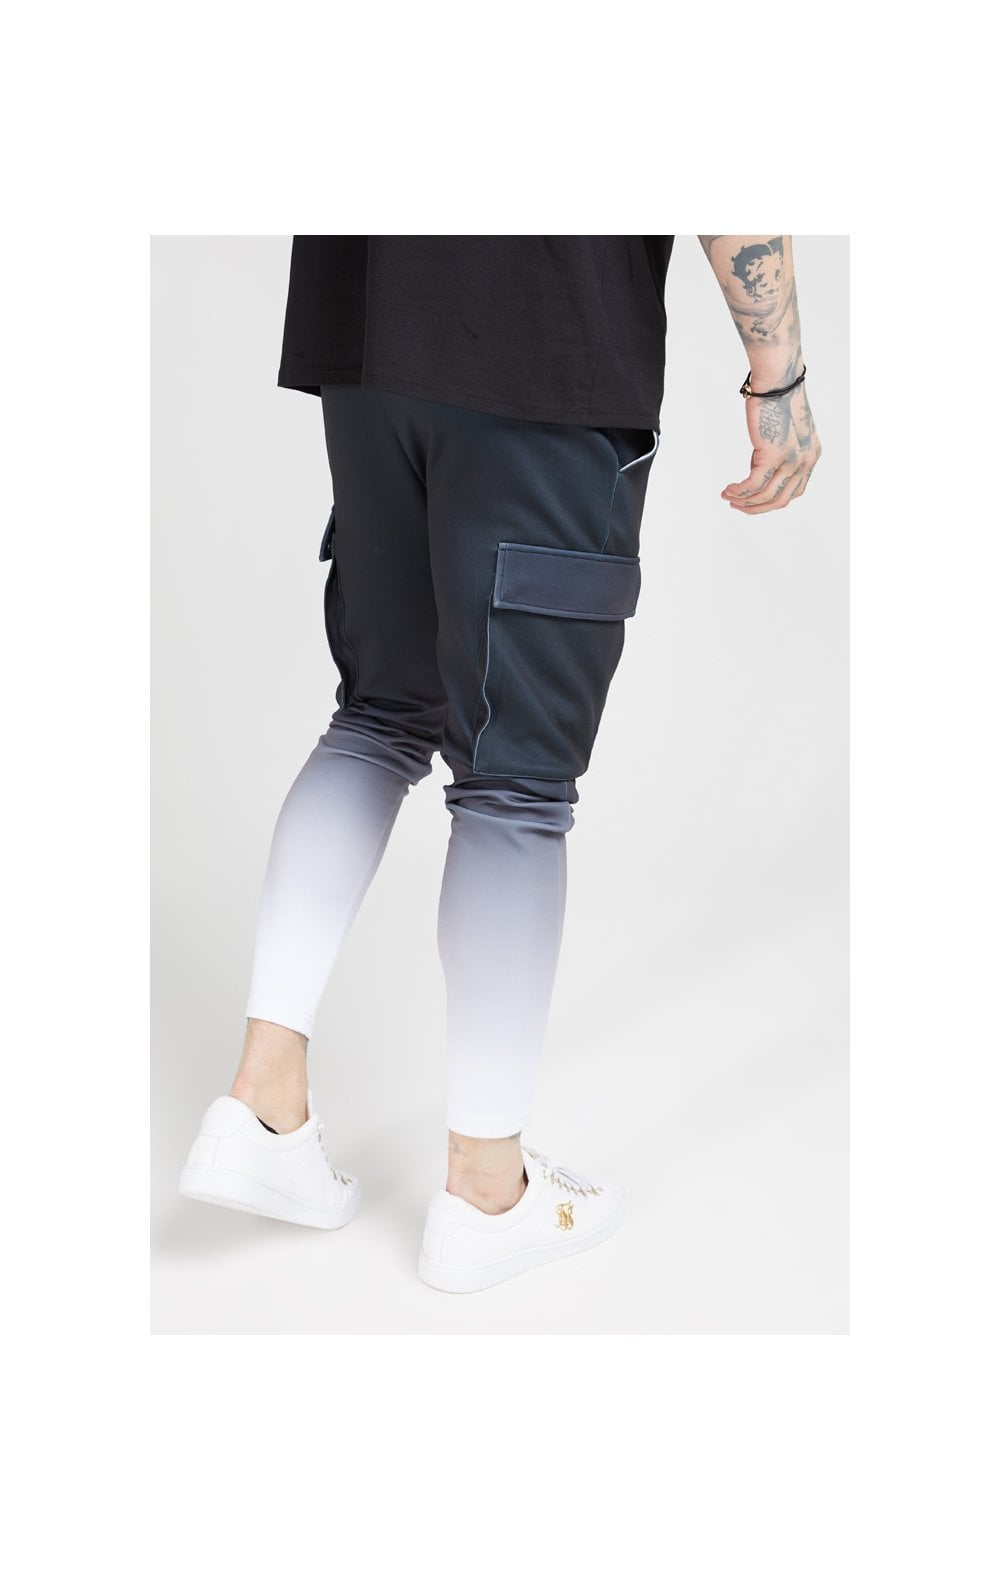 Load image into Gallery viewer, SikSilk Poly Athlete Cargo Pants - Black & White (4)